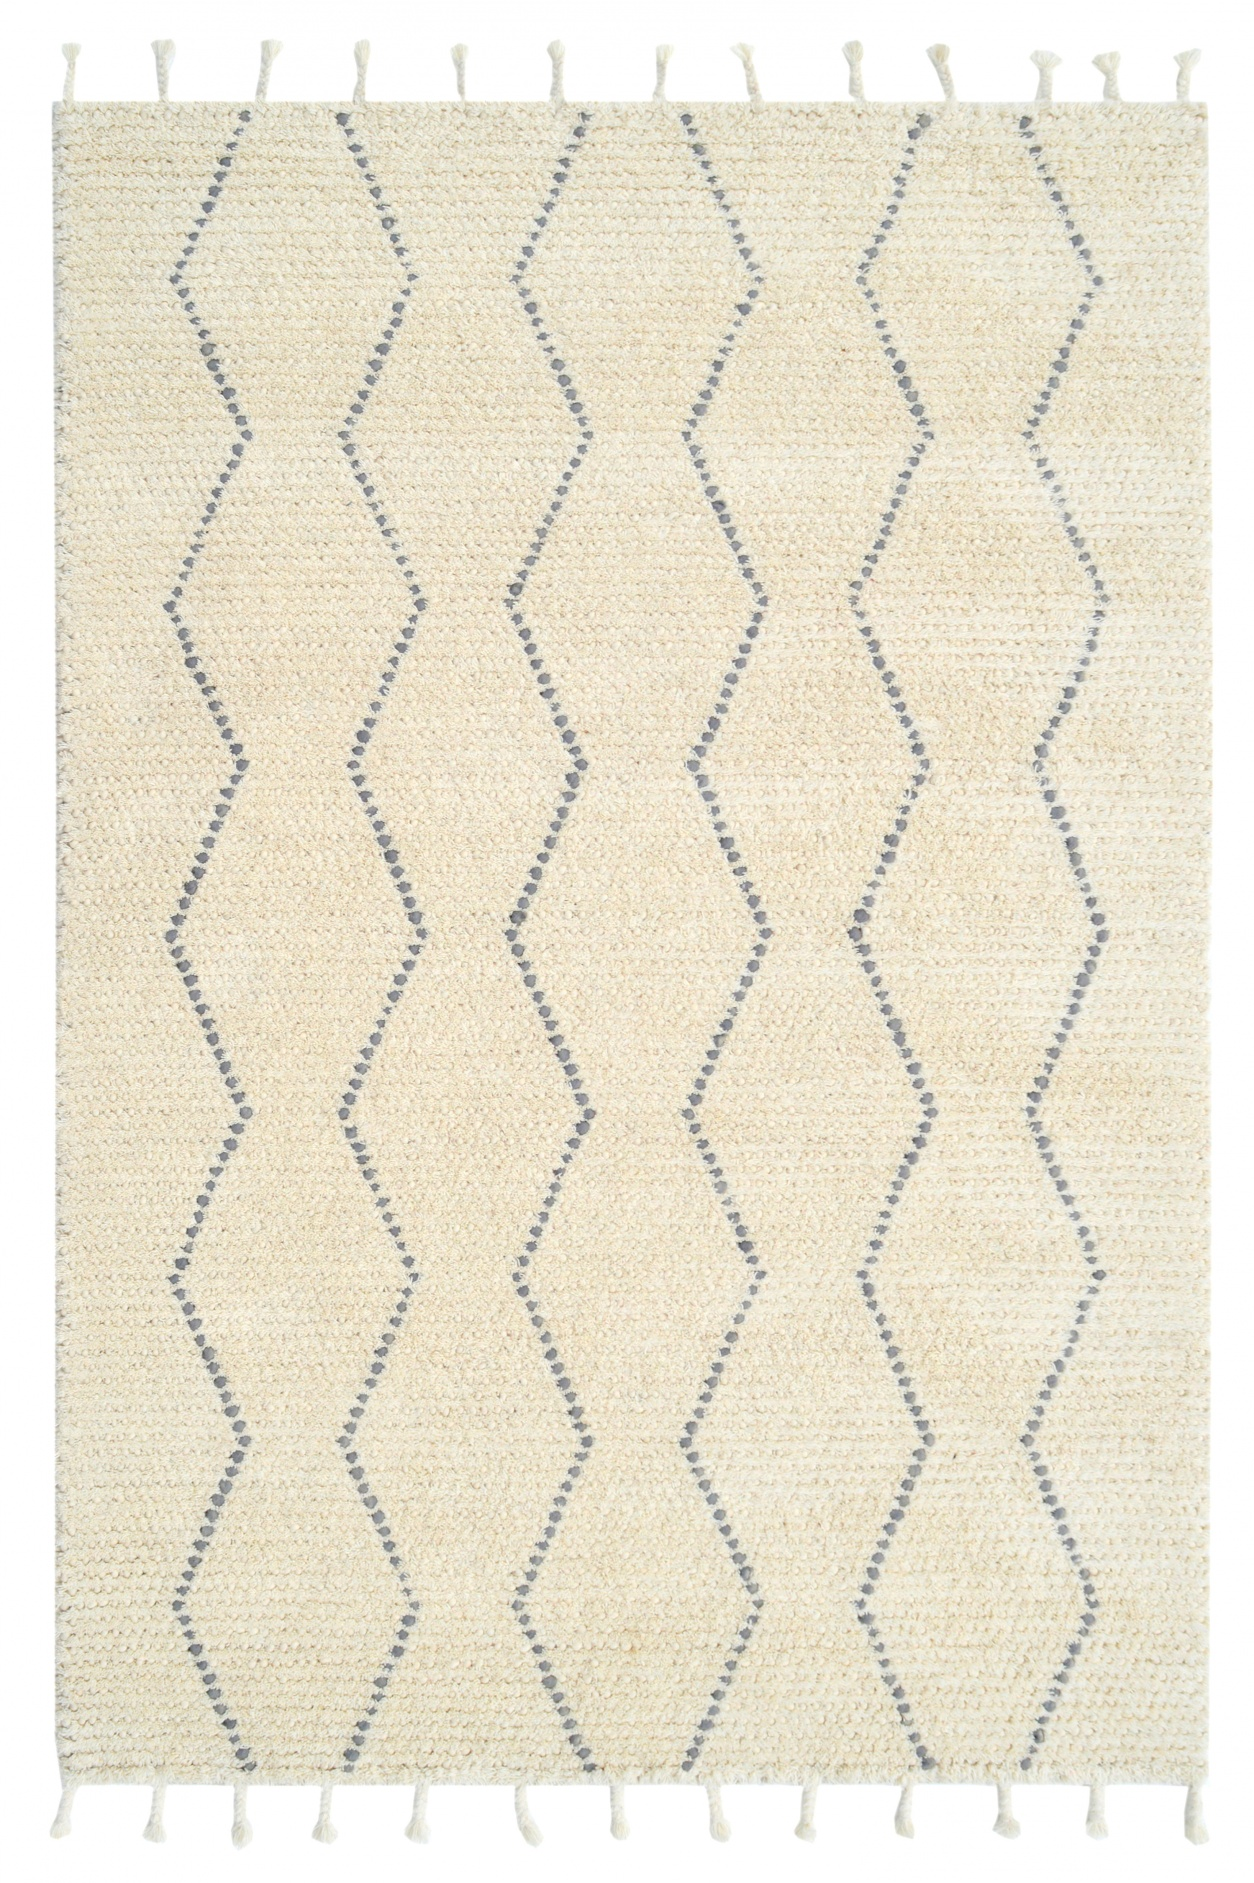 Dynamic Area Rugs Celestial 6950-109 Ivory/Gray Moroccan Design